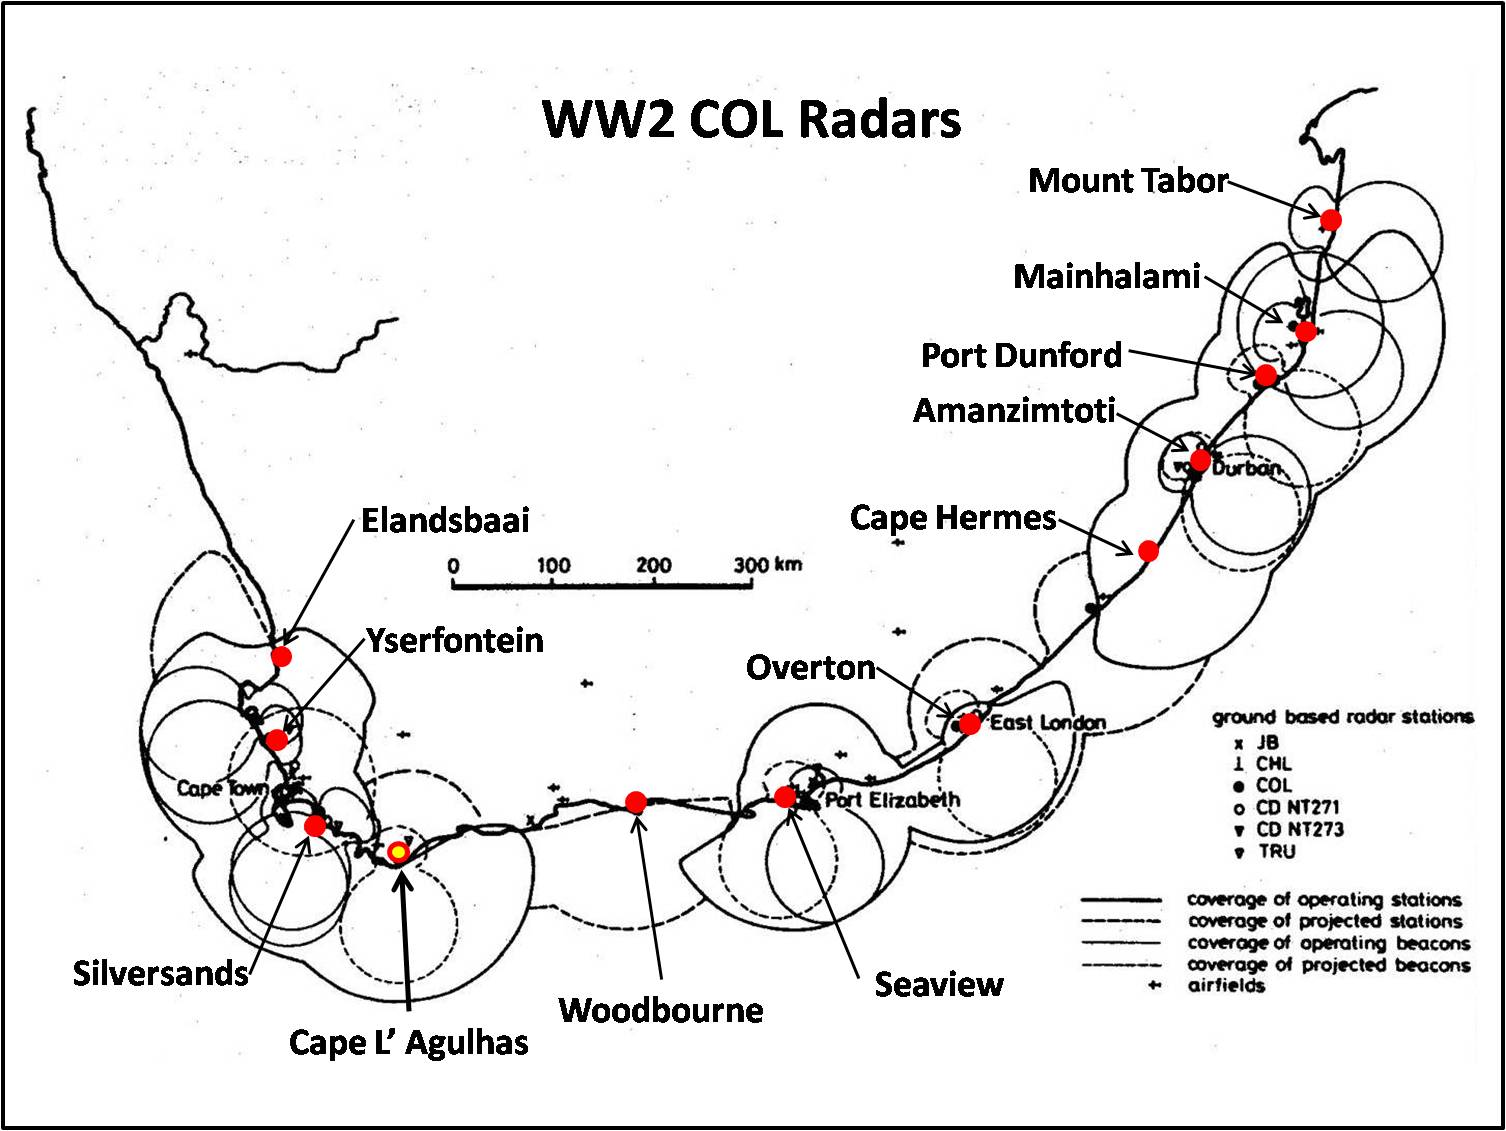 ww2 coastal radar station locations